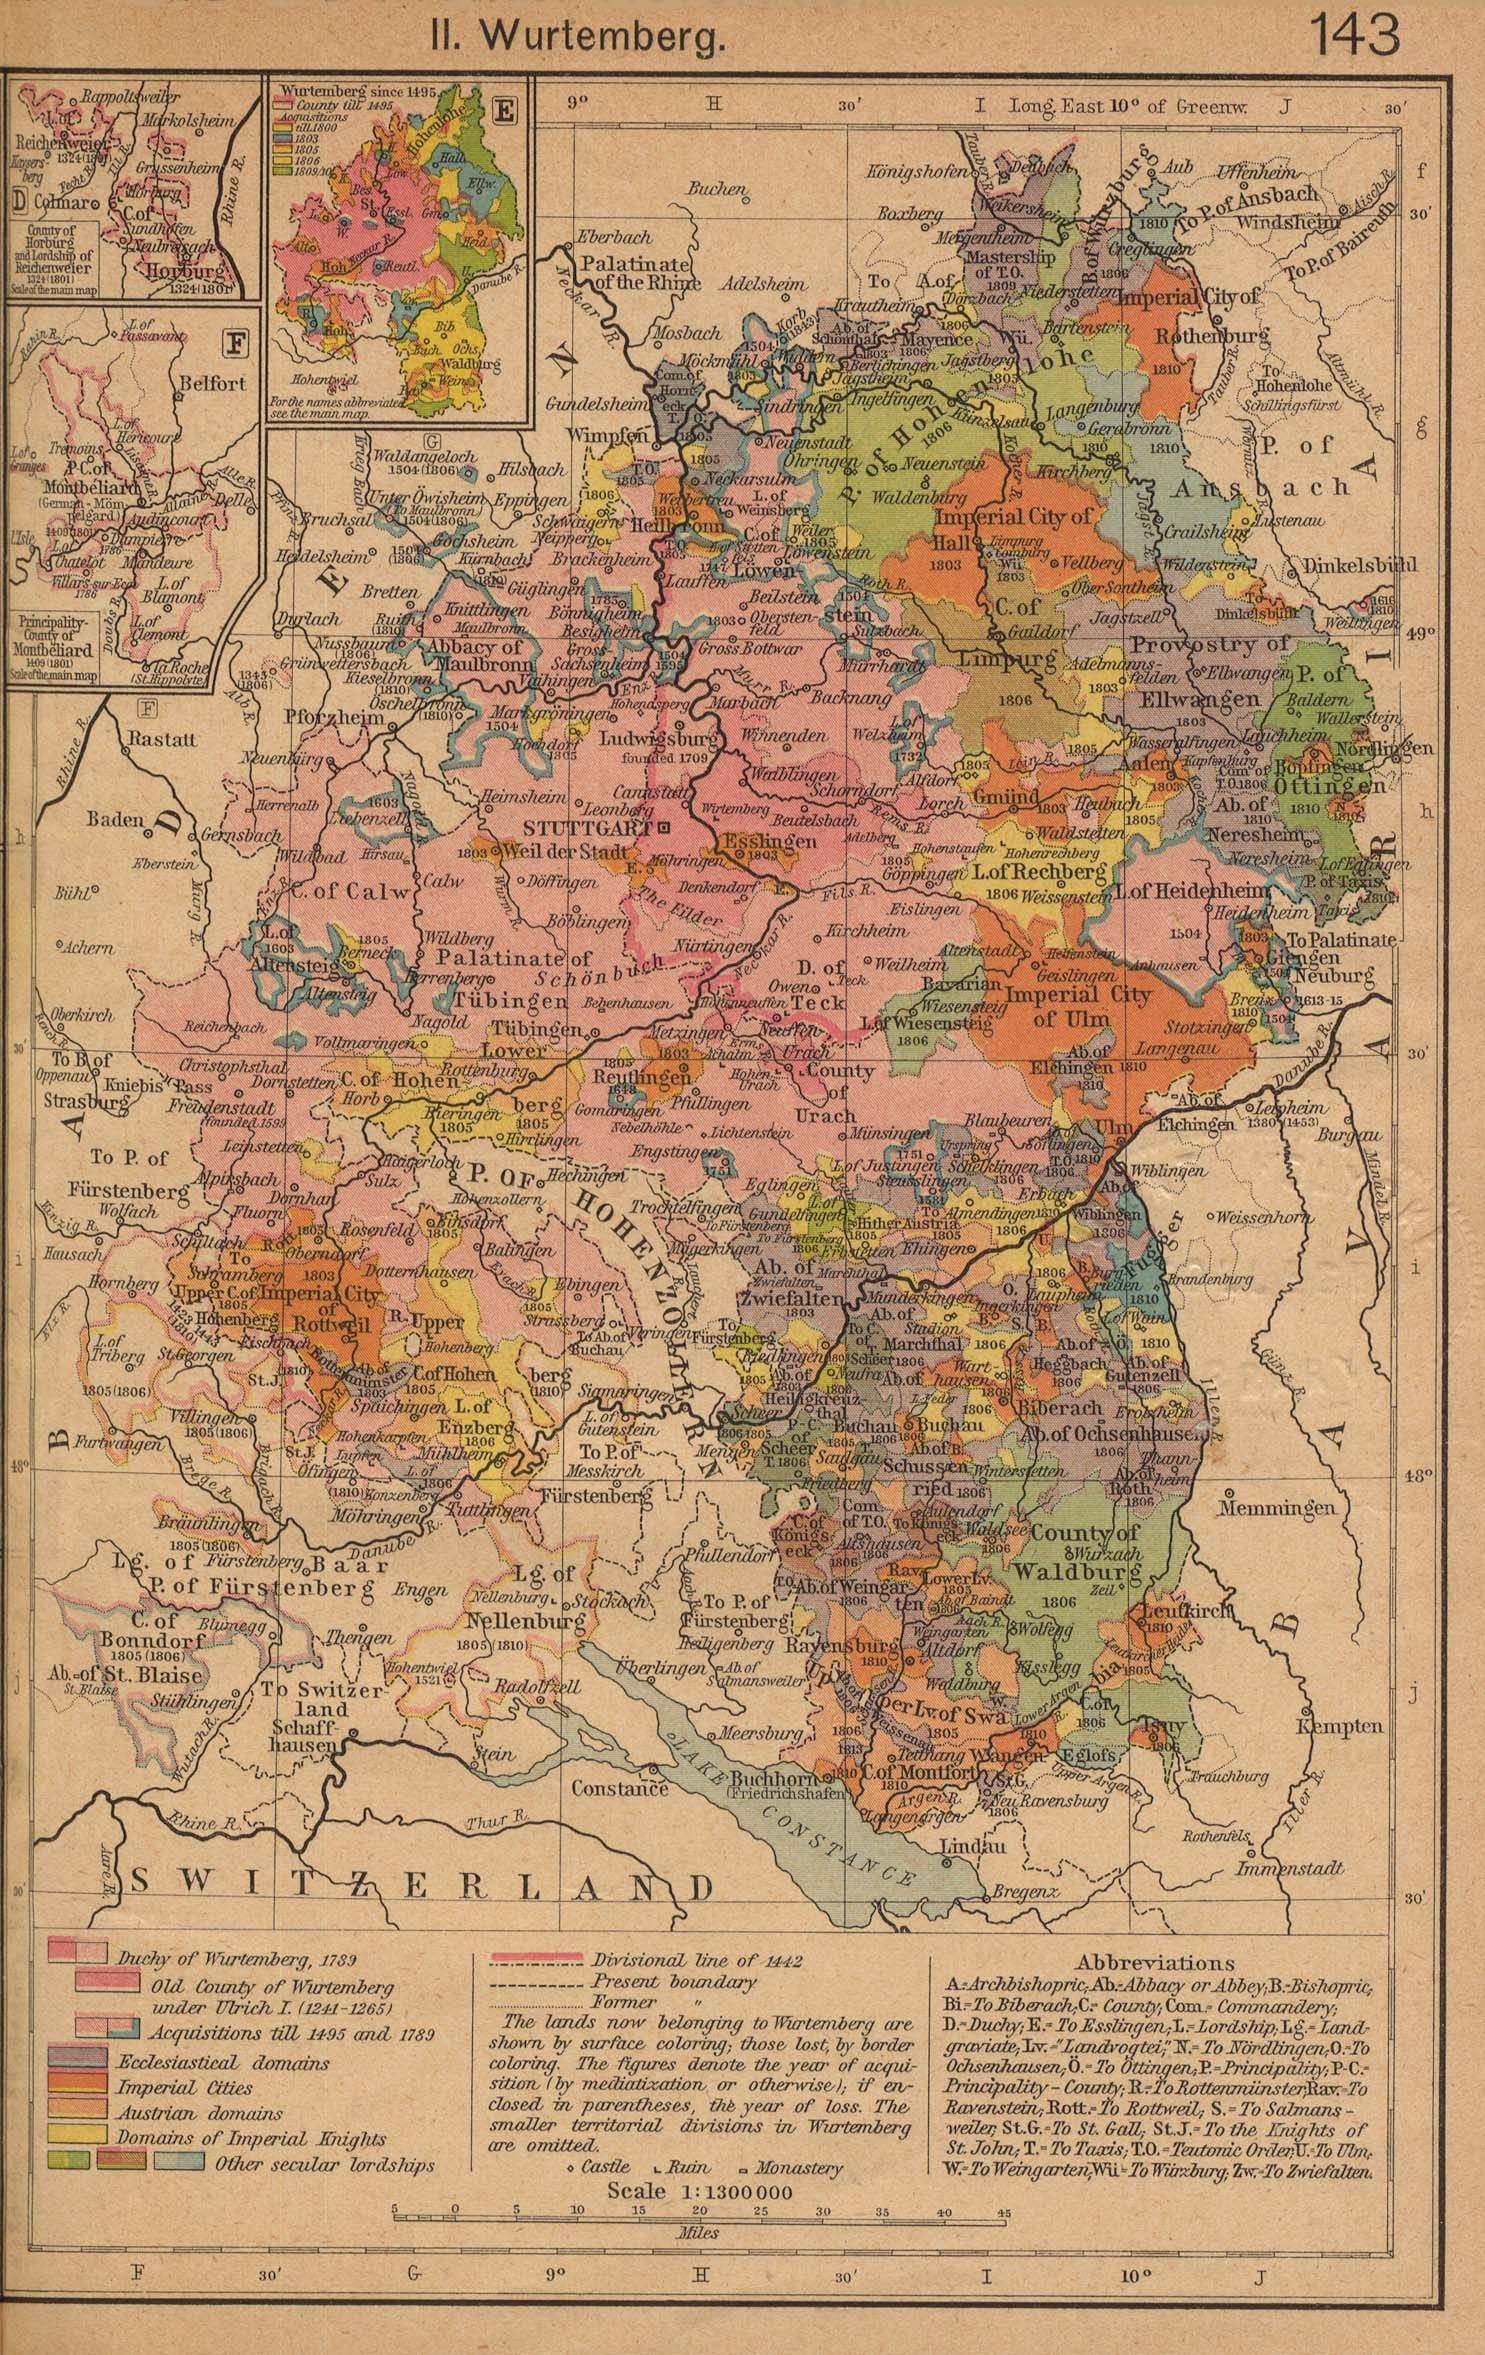 Historical Maps of Europe. German States Before and since the French Revolution: II. Wurtemberg (698K) Insets: County of Horburg and Lordship of Reichenweier. Principality-County of Montbeliard. Wurtemberg since 1495. From The Historical Atlas by William R. Shepherd, 1923.